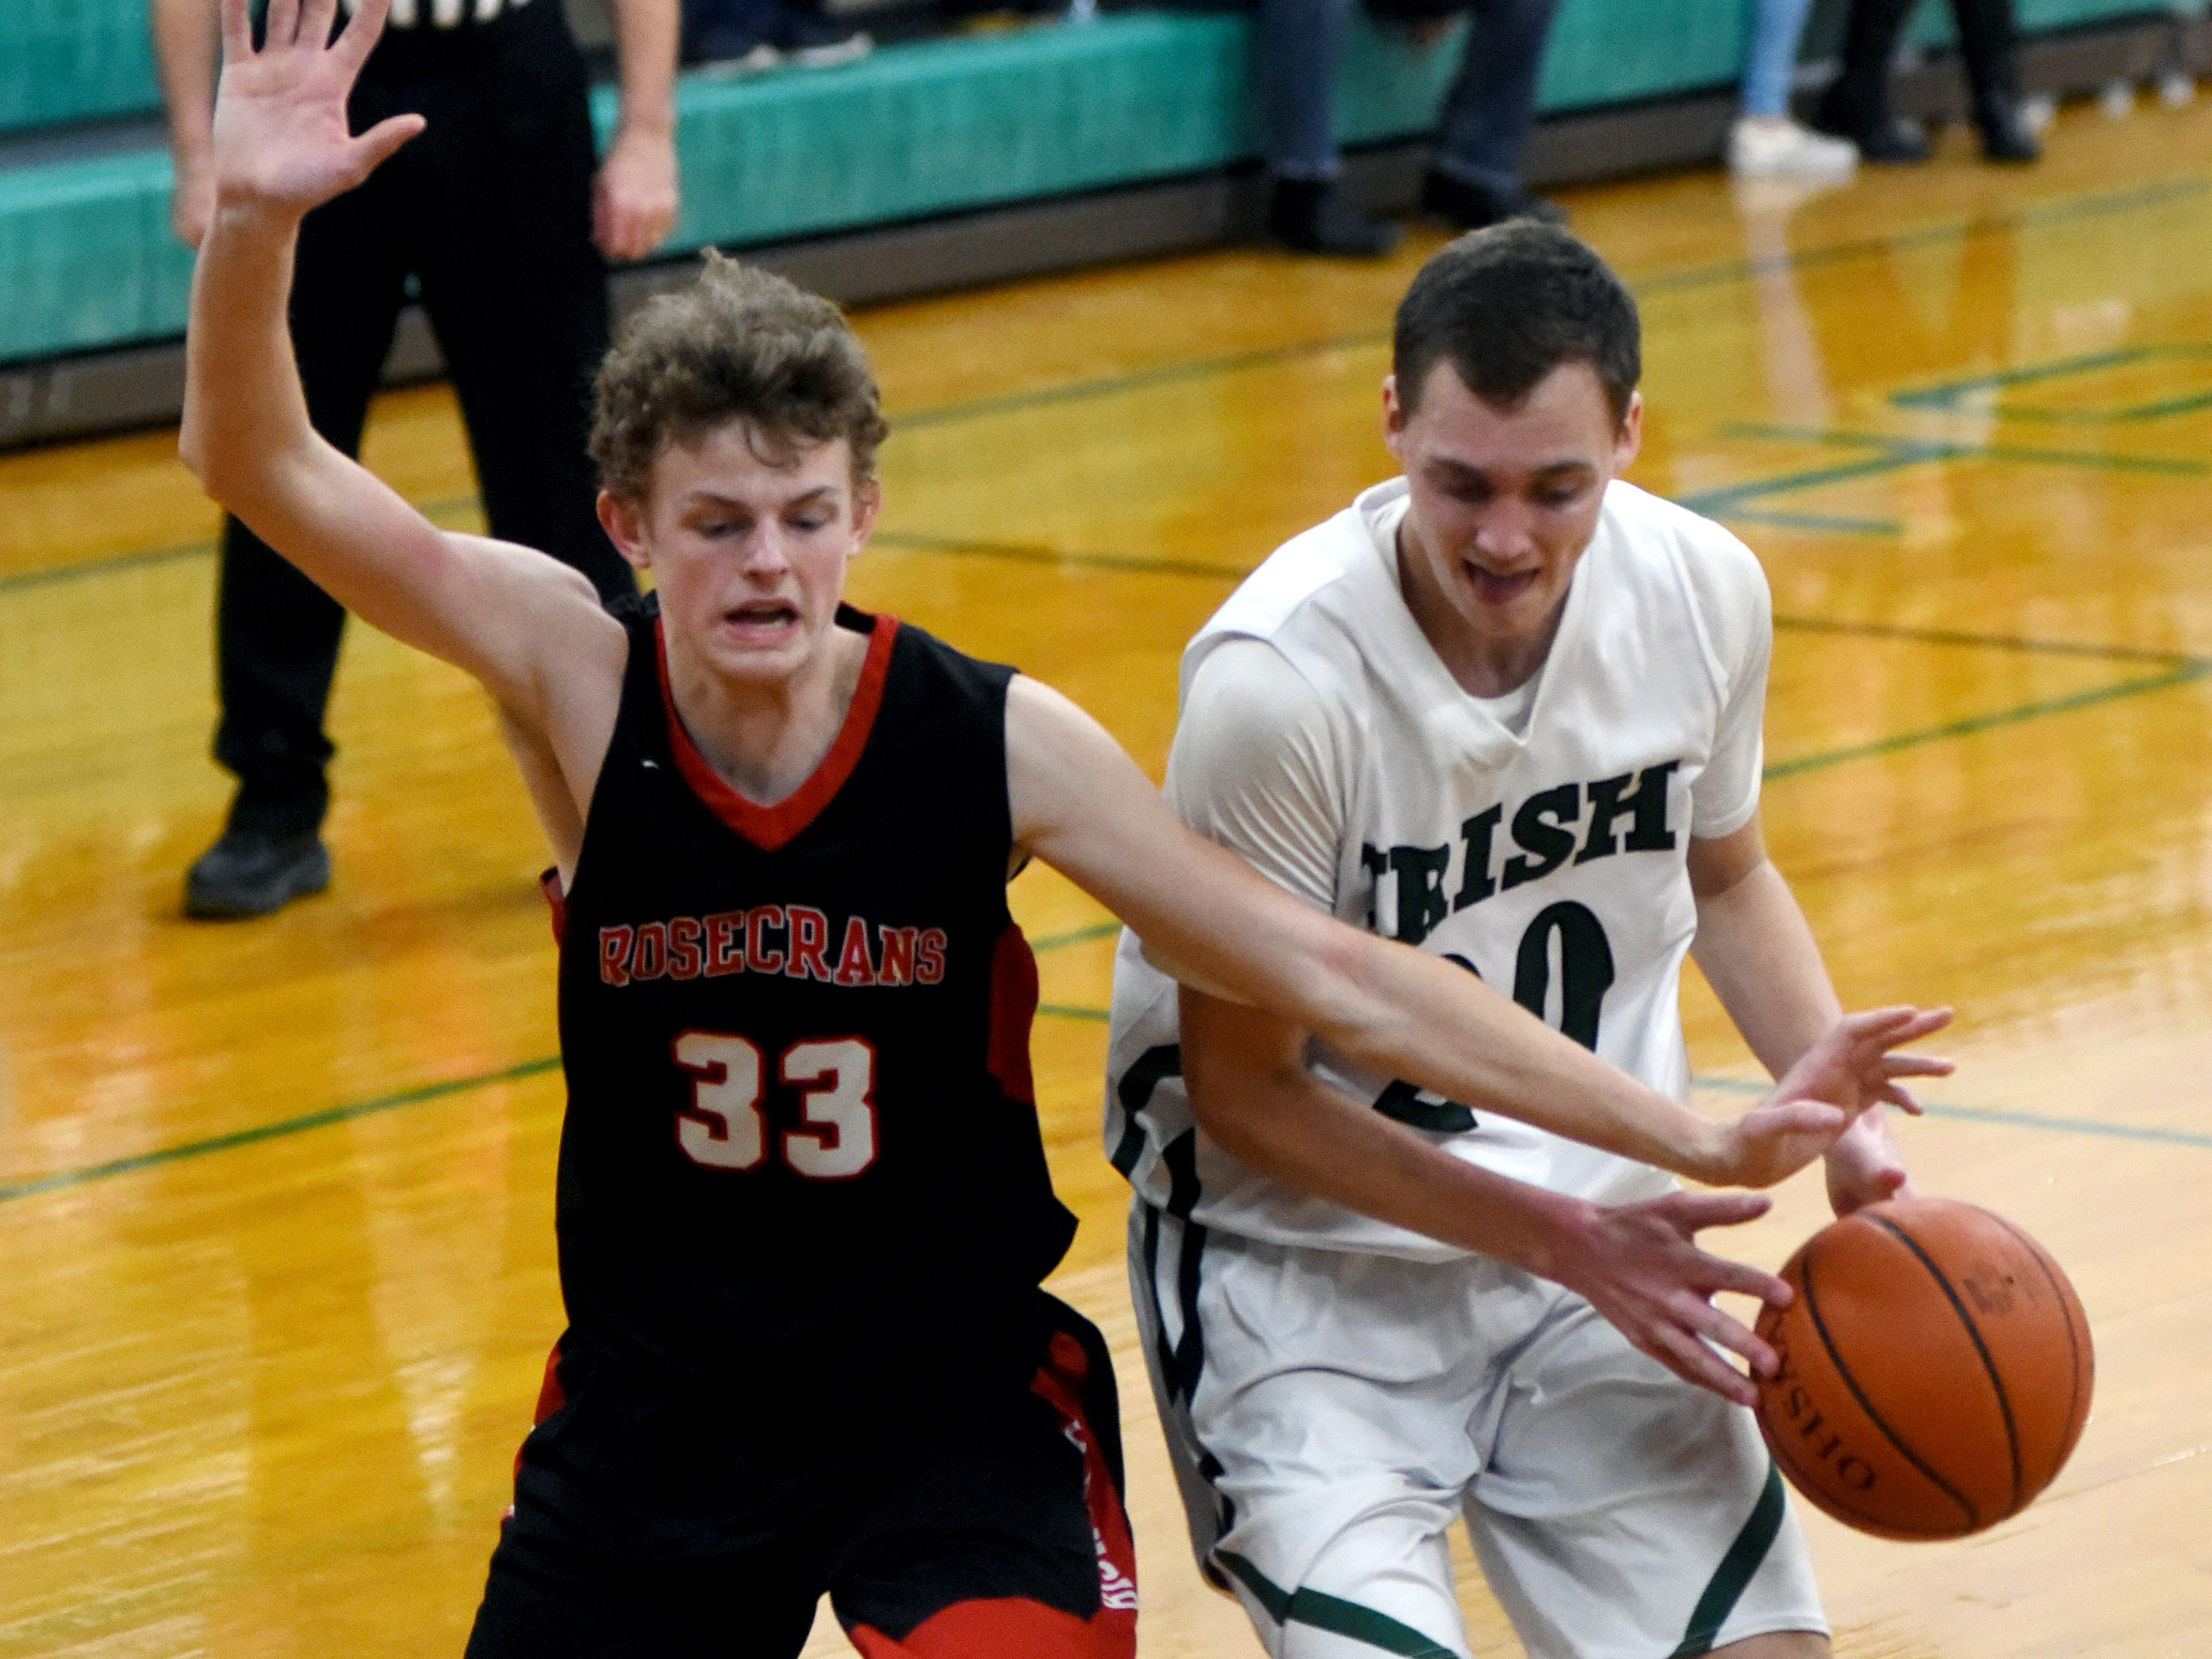 Kaid Brown, of Rosecrans, tries to steal the ball from Fisher Catholic's Bryson Vogel.